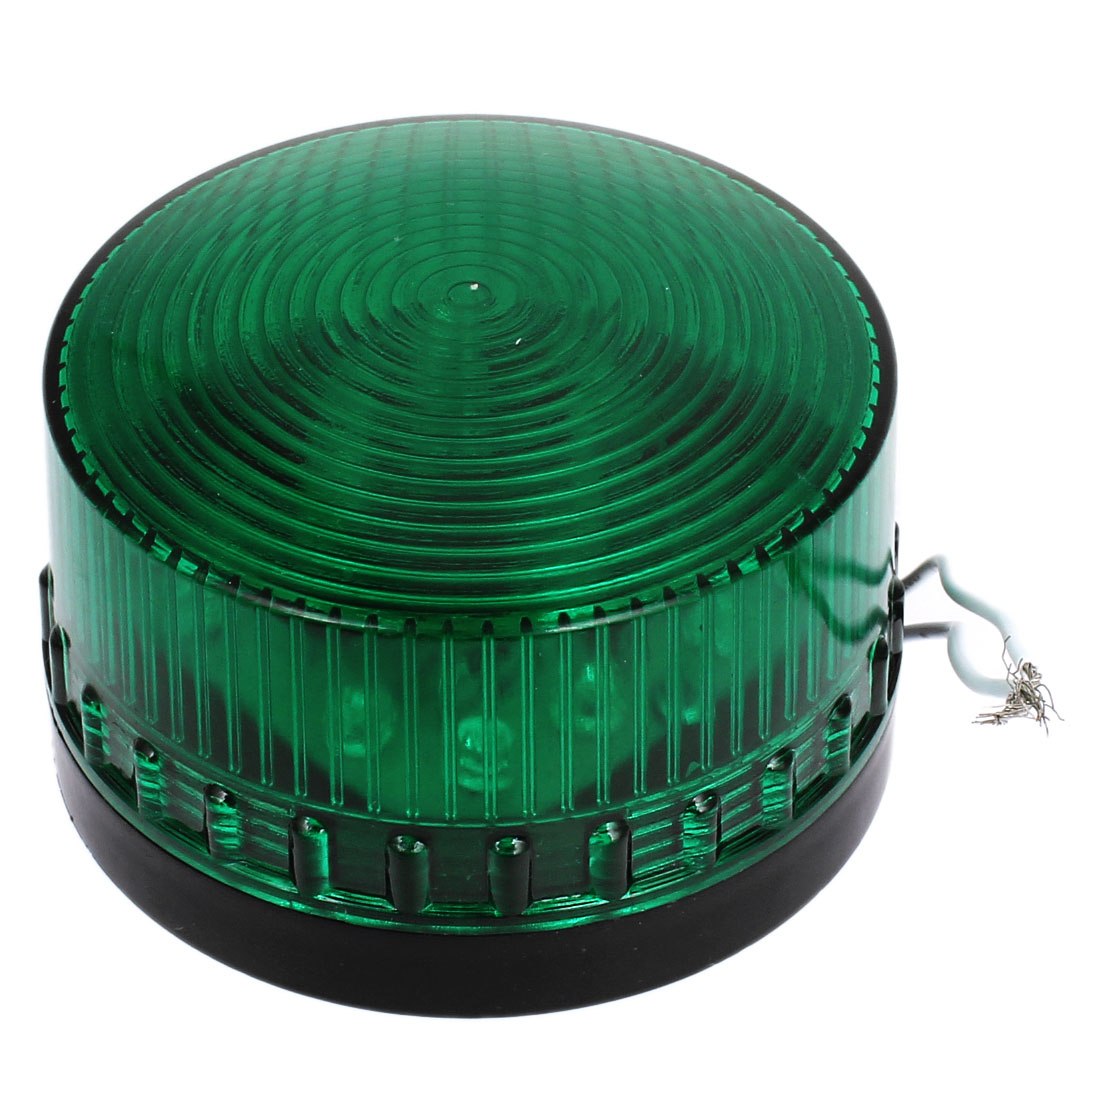 AC 220V Industrial Green LED Flash Strobe Signal Light Security Warning